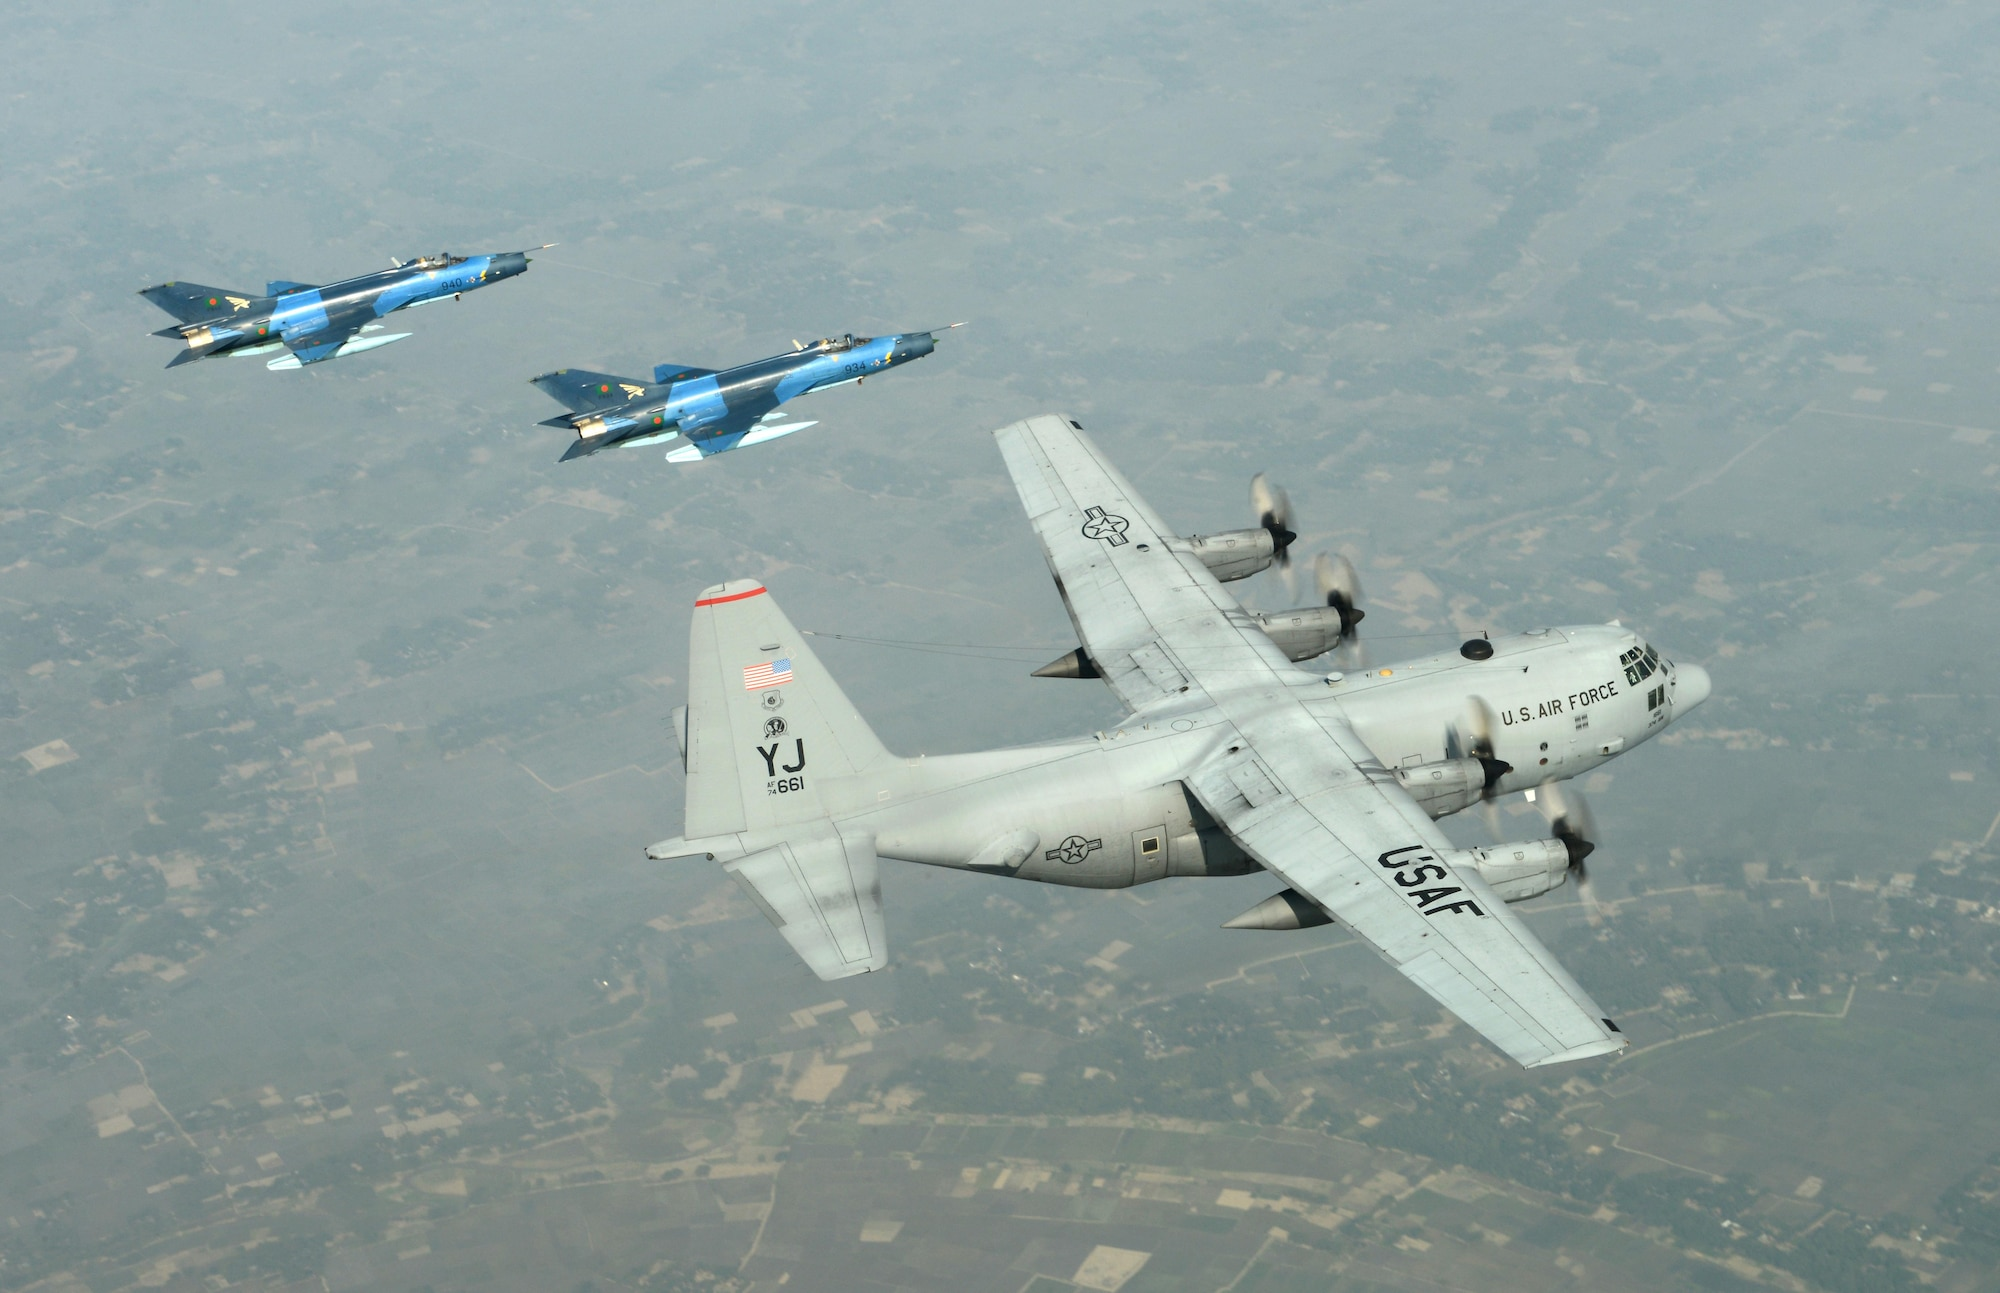 Two Bangladesh air force F-7BG Defenders escort a U.S. Air Force C-130H Hercules during Cope South 15 Jan. 28, 2015, near Kishoreganj, Bangladesh. Cope South is a Pacific Air Forces-sponsored, bilateral tactical airlift exercise conducted in Bangladesh, with a focus on cooperative flight operations, day and night low-level navigation, tactical airdrop, and air-land missions; as well as subject matter expert exchanges in the fields of operations, maintenance and rigging disciplines. The F-7Bs are assigned to the 5th Squadron at BAF Base Bangabandhu, Bangladesh. The C-130H is assigned to the 374th Airlift Wing at Yokota Air Base, Japan. (U.S. Air Force photo/1st Lt. Jake Bailey)